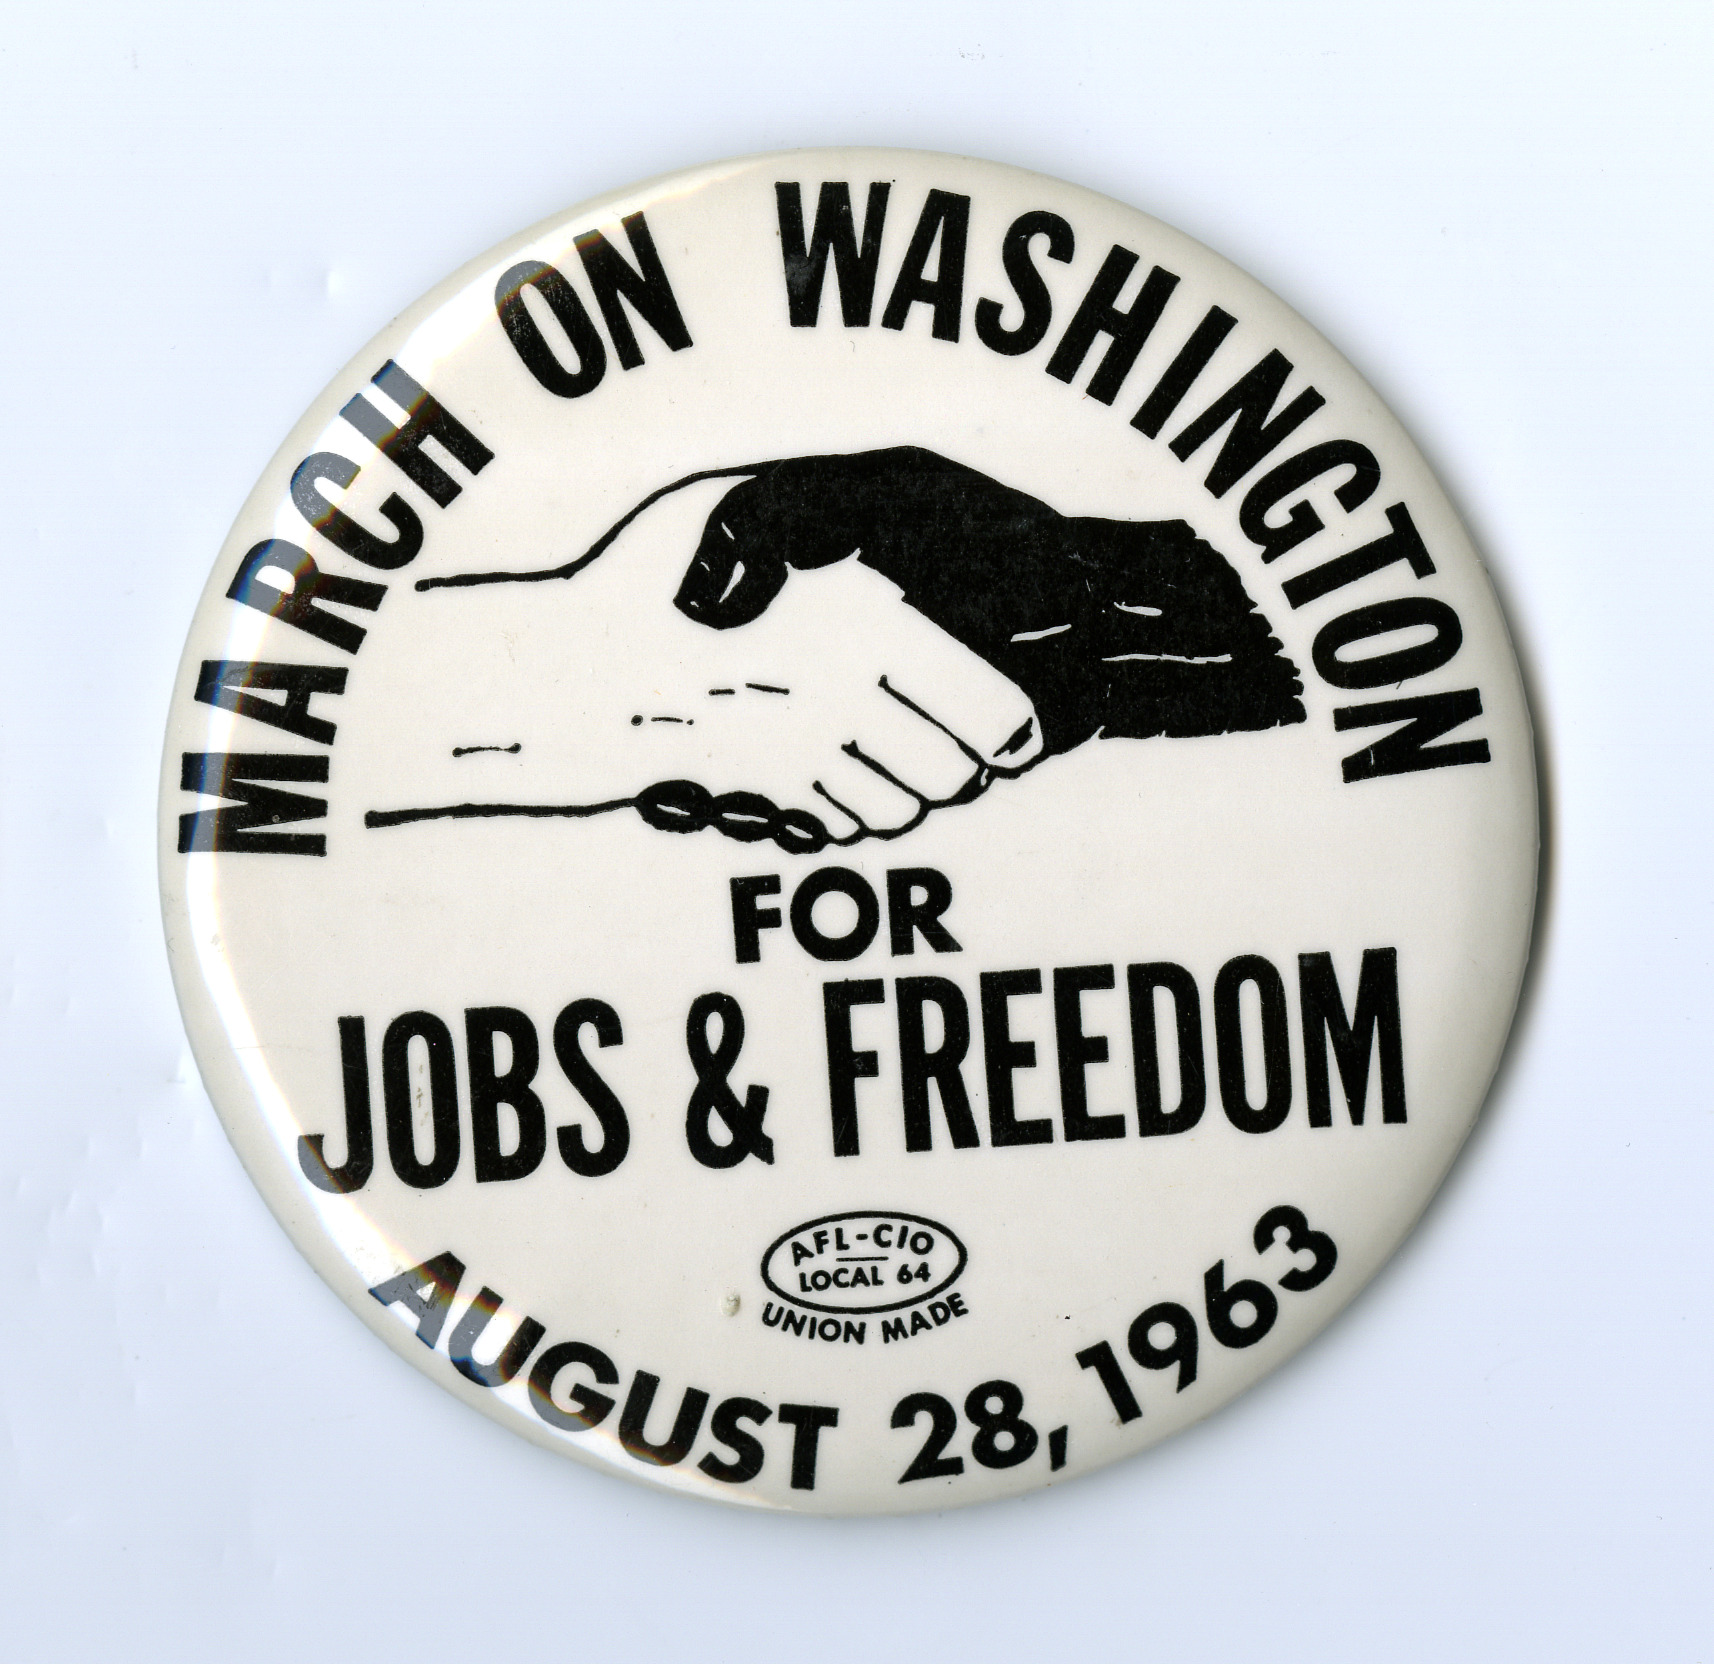 Button, March on Washington for Jobs & Freedom.